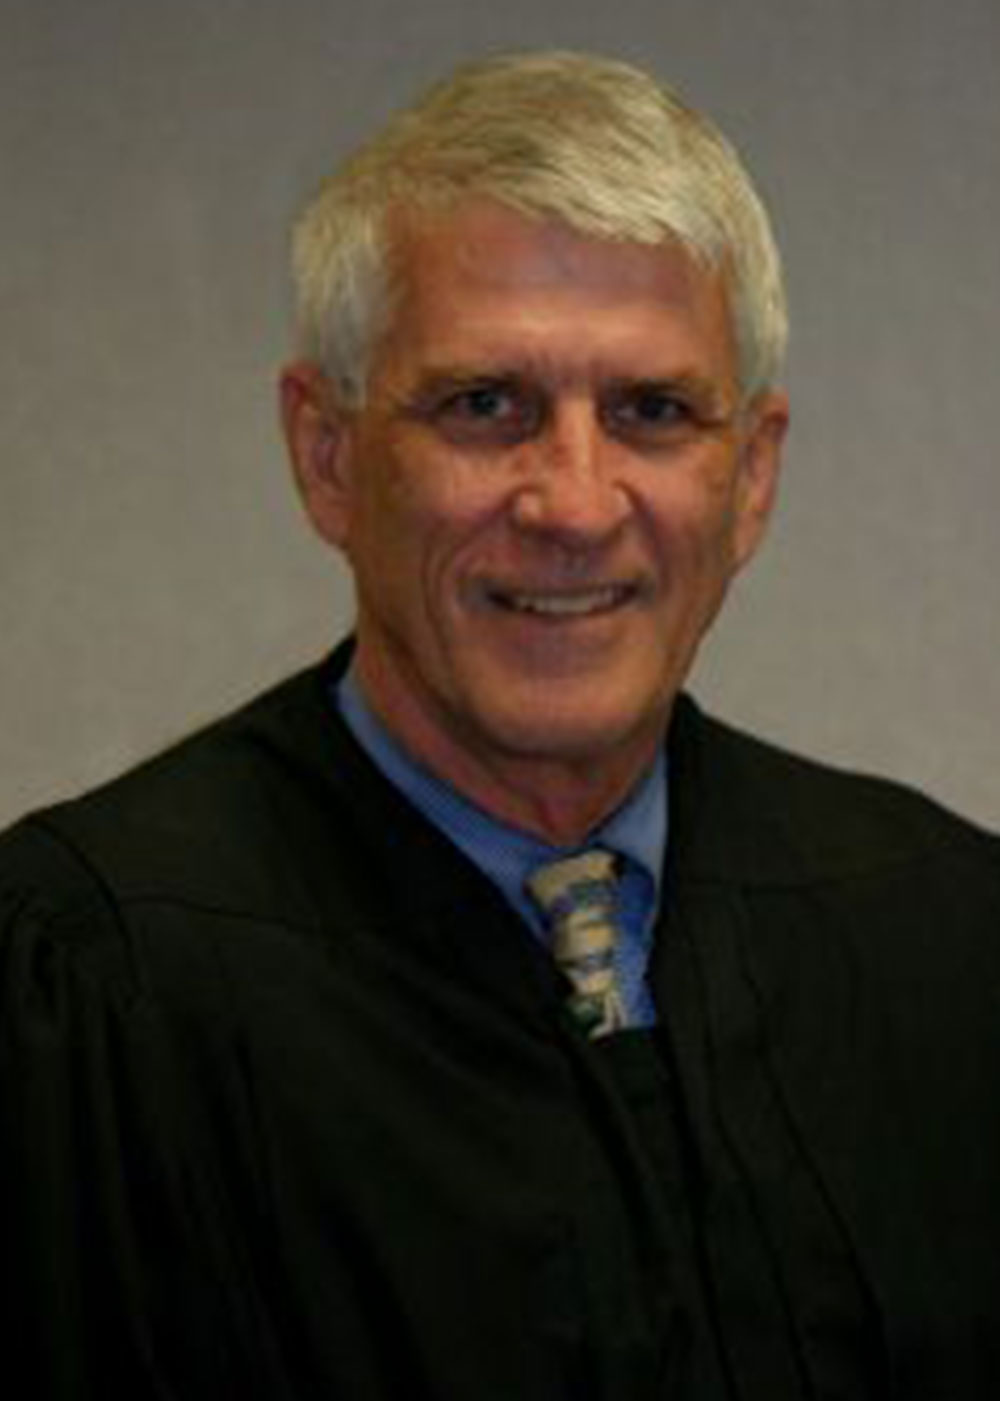 Judge Peter Sieg